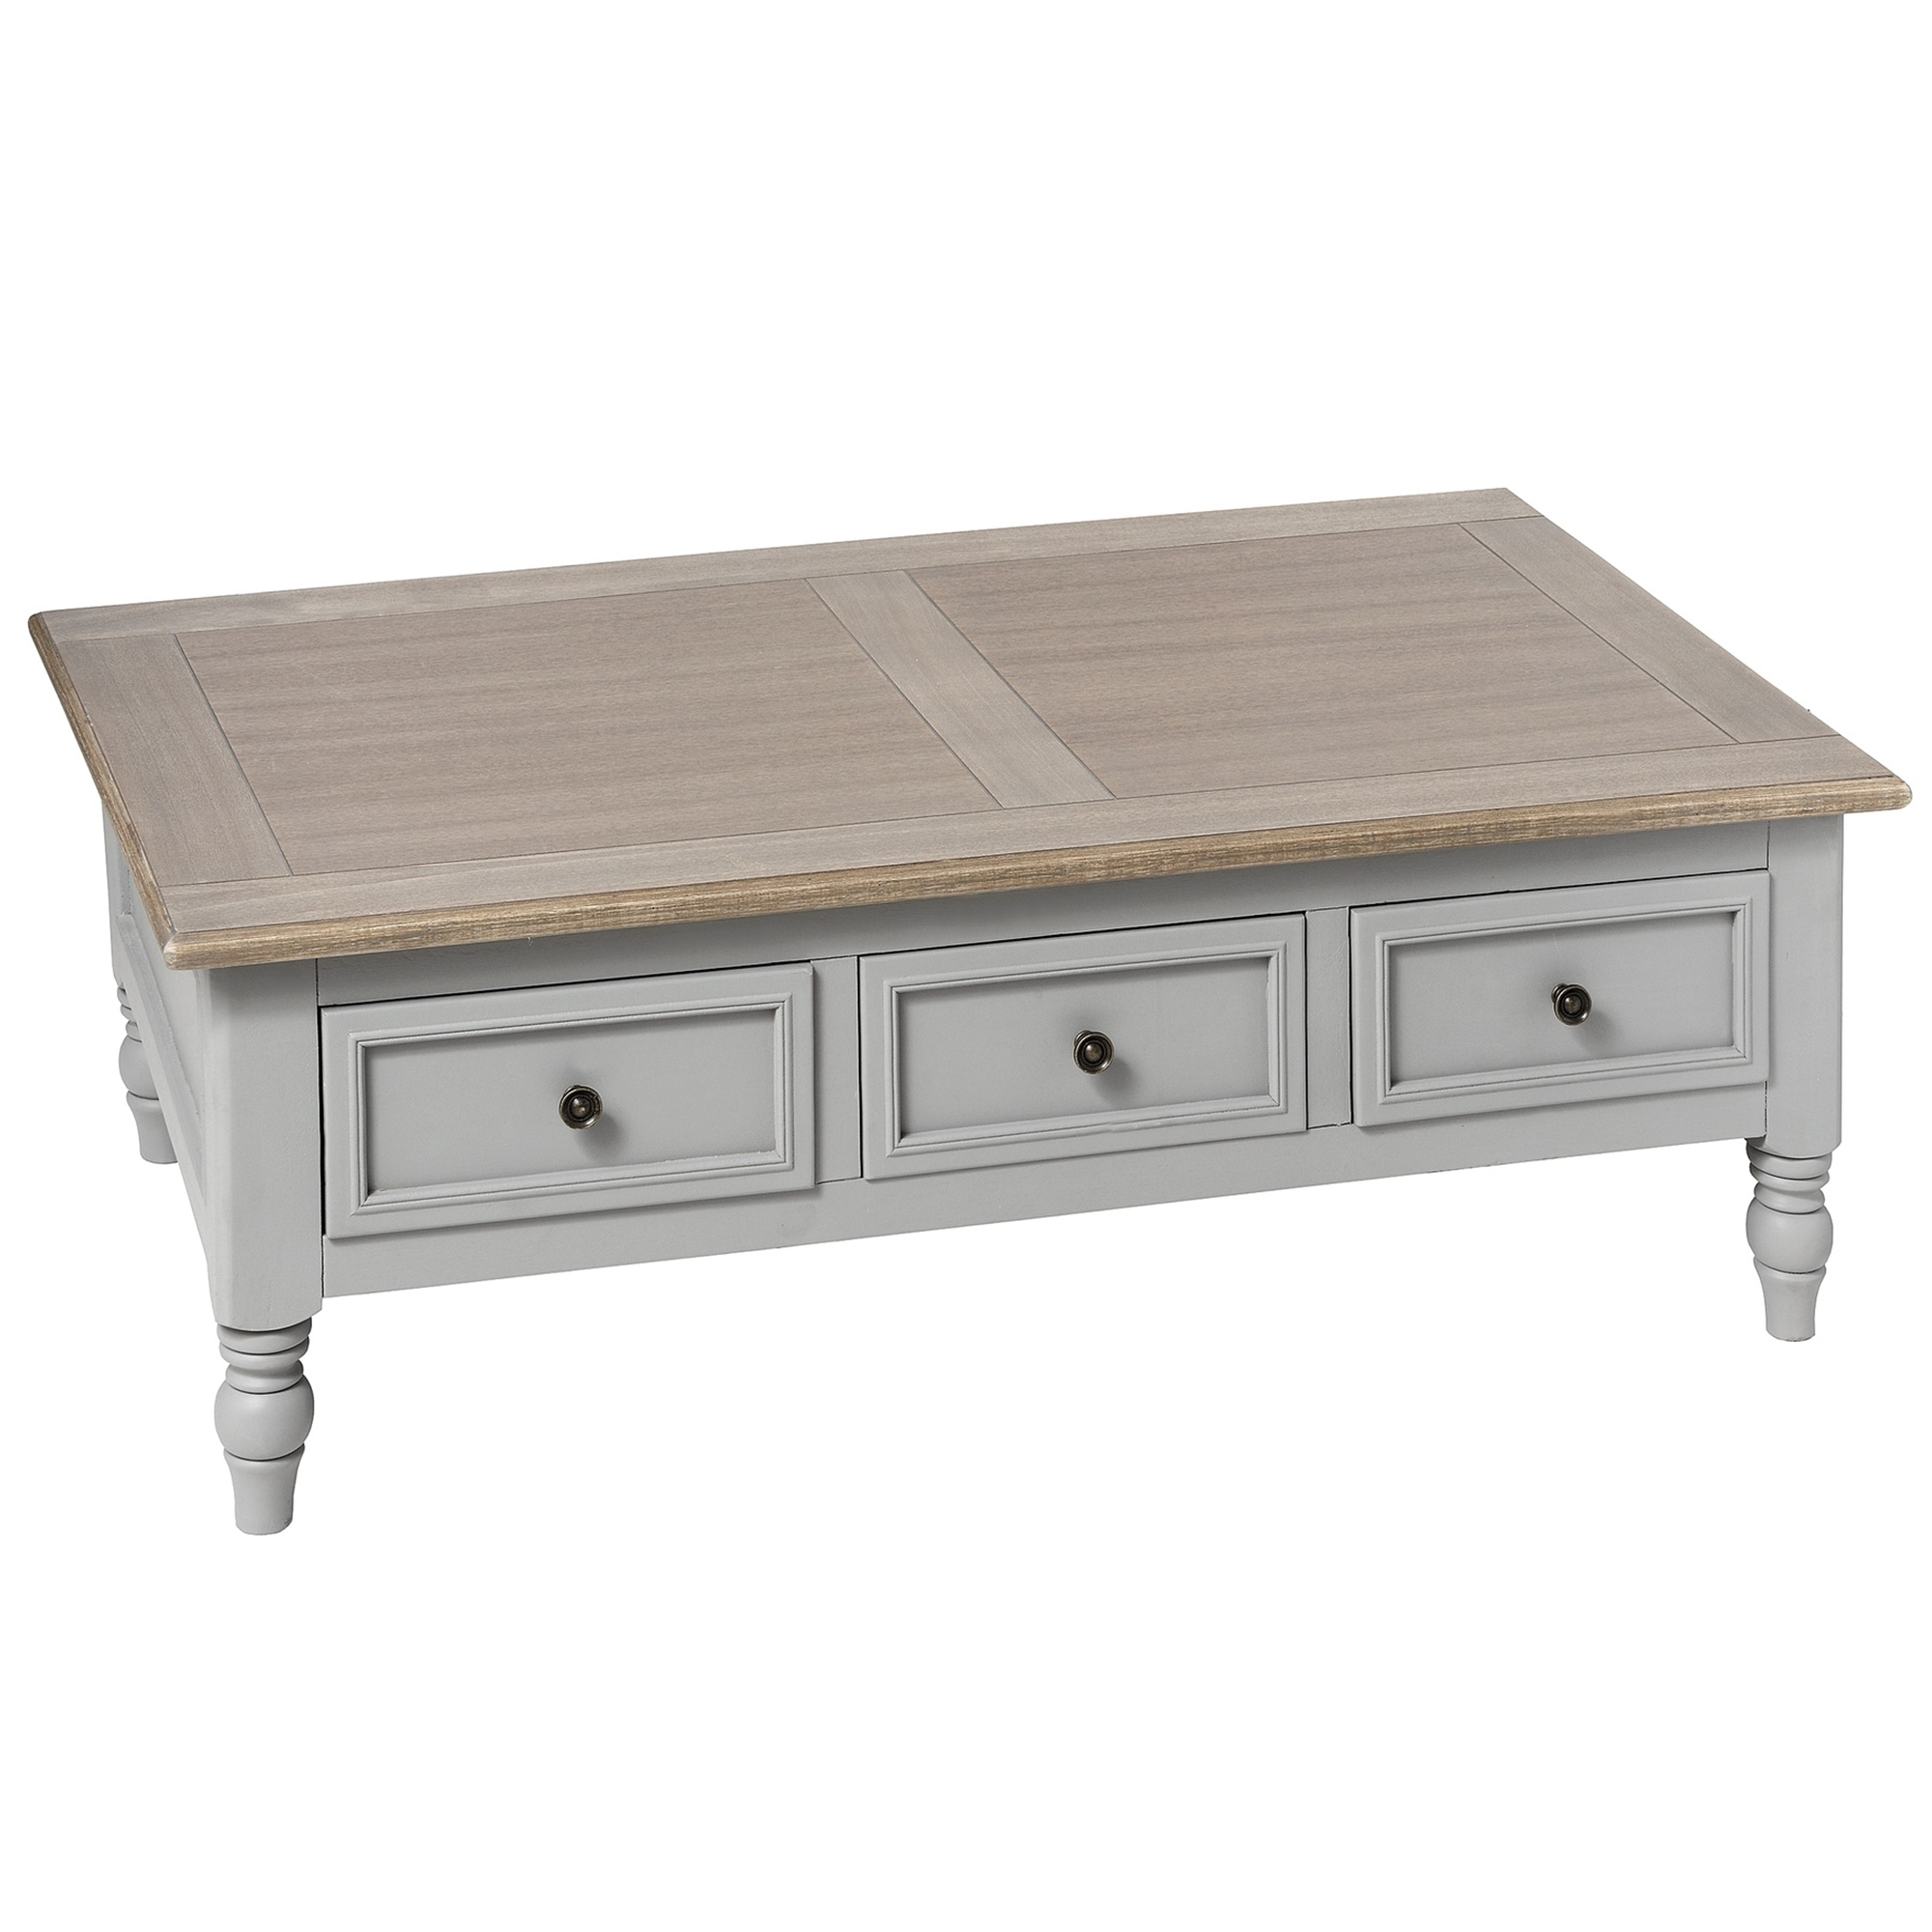 Churchill Shab Chic Coffee Table Available Now throughout size 2000 X 2000